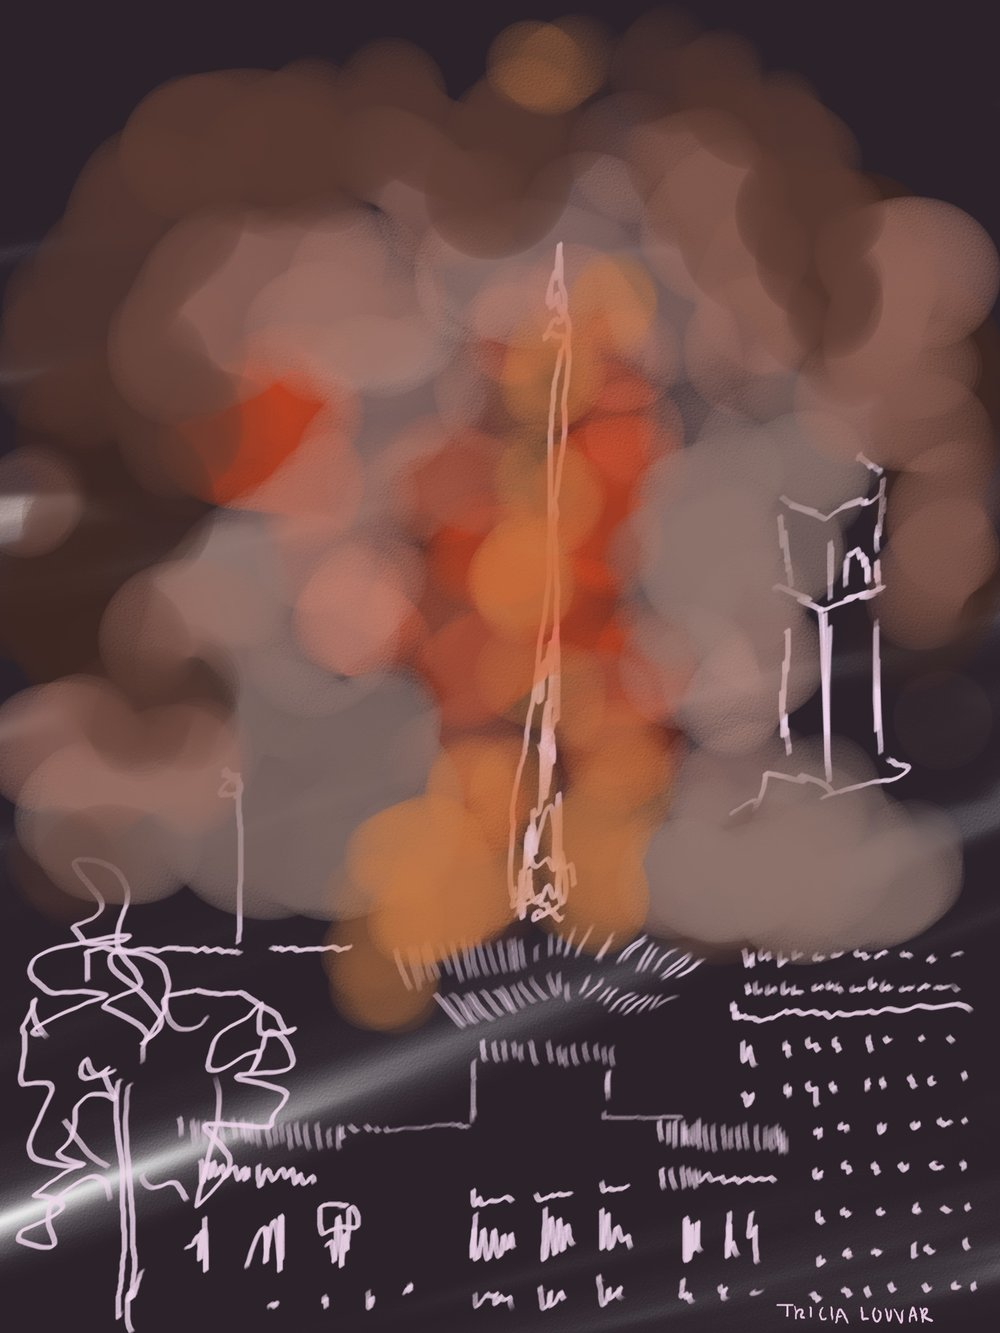 15 April, 2019  Monday     l Tax day in America. And now the day will be known as a historical burn in Paris. All is ephemeral  on earth.   15-minute sketch. Day 03/365